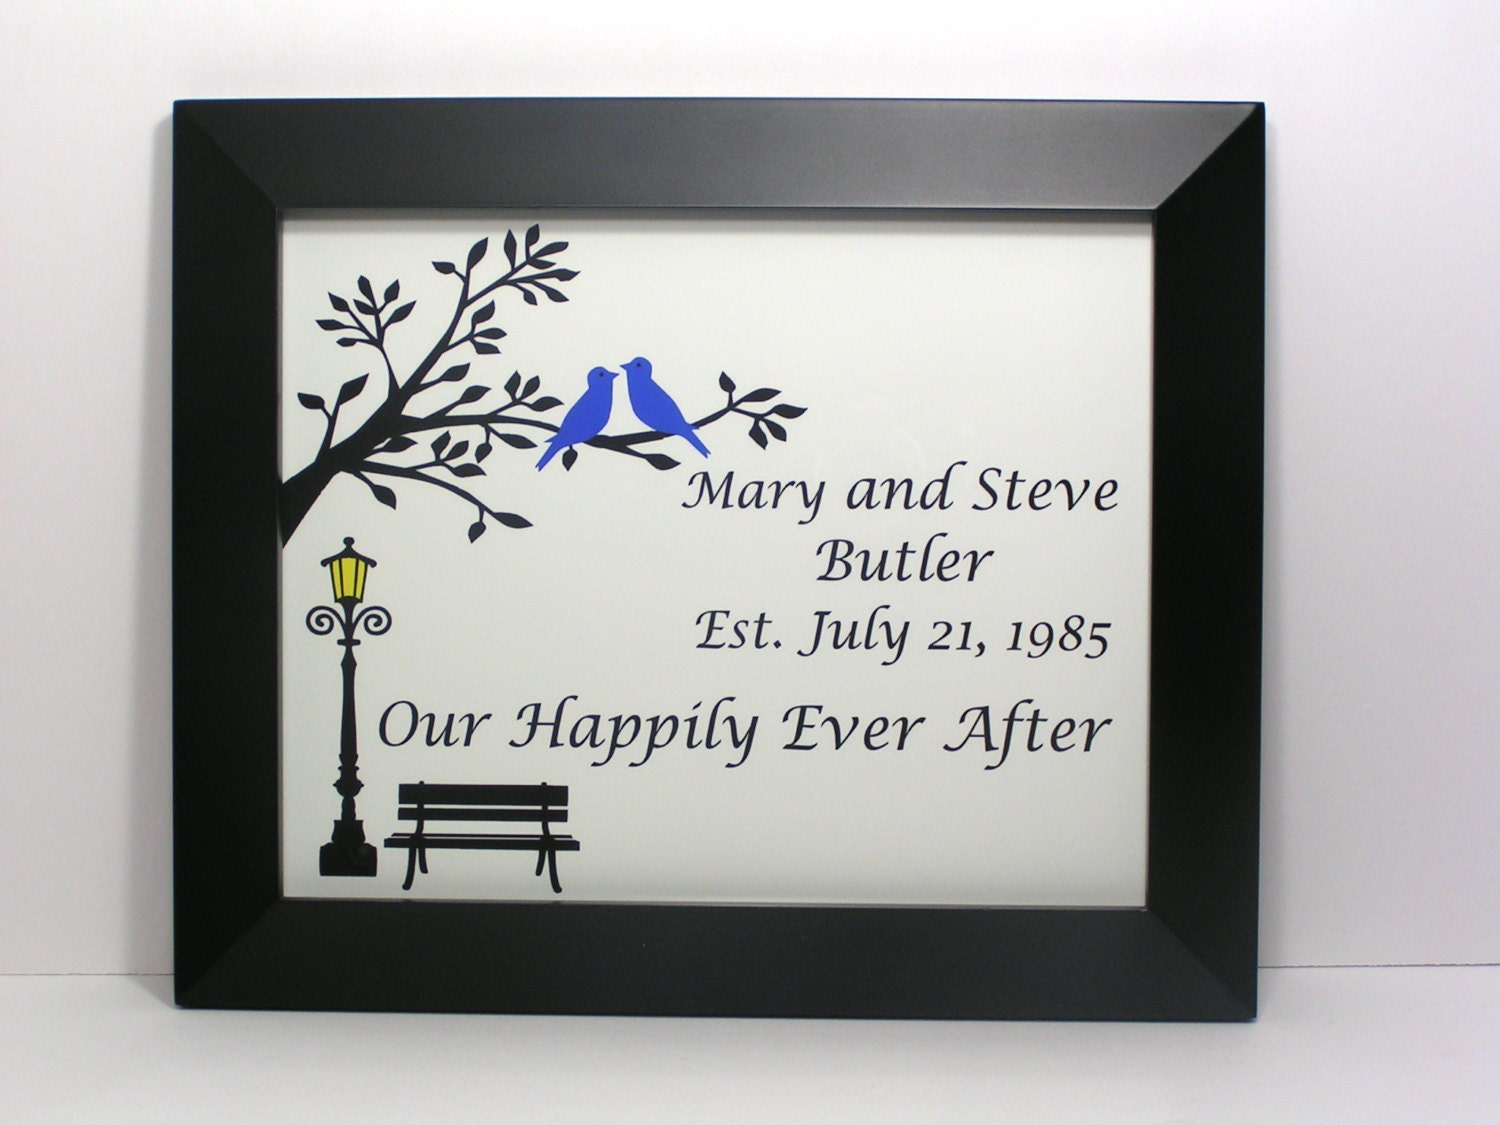 Wedding Gift Ideas For Couples: Personalized Wedding Gifts For Couple By LetterPicturePrints